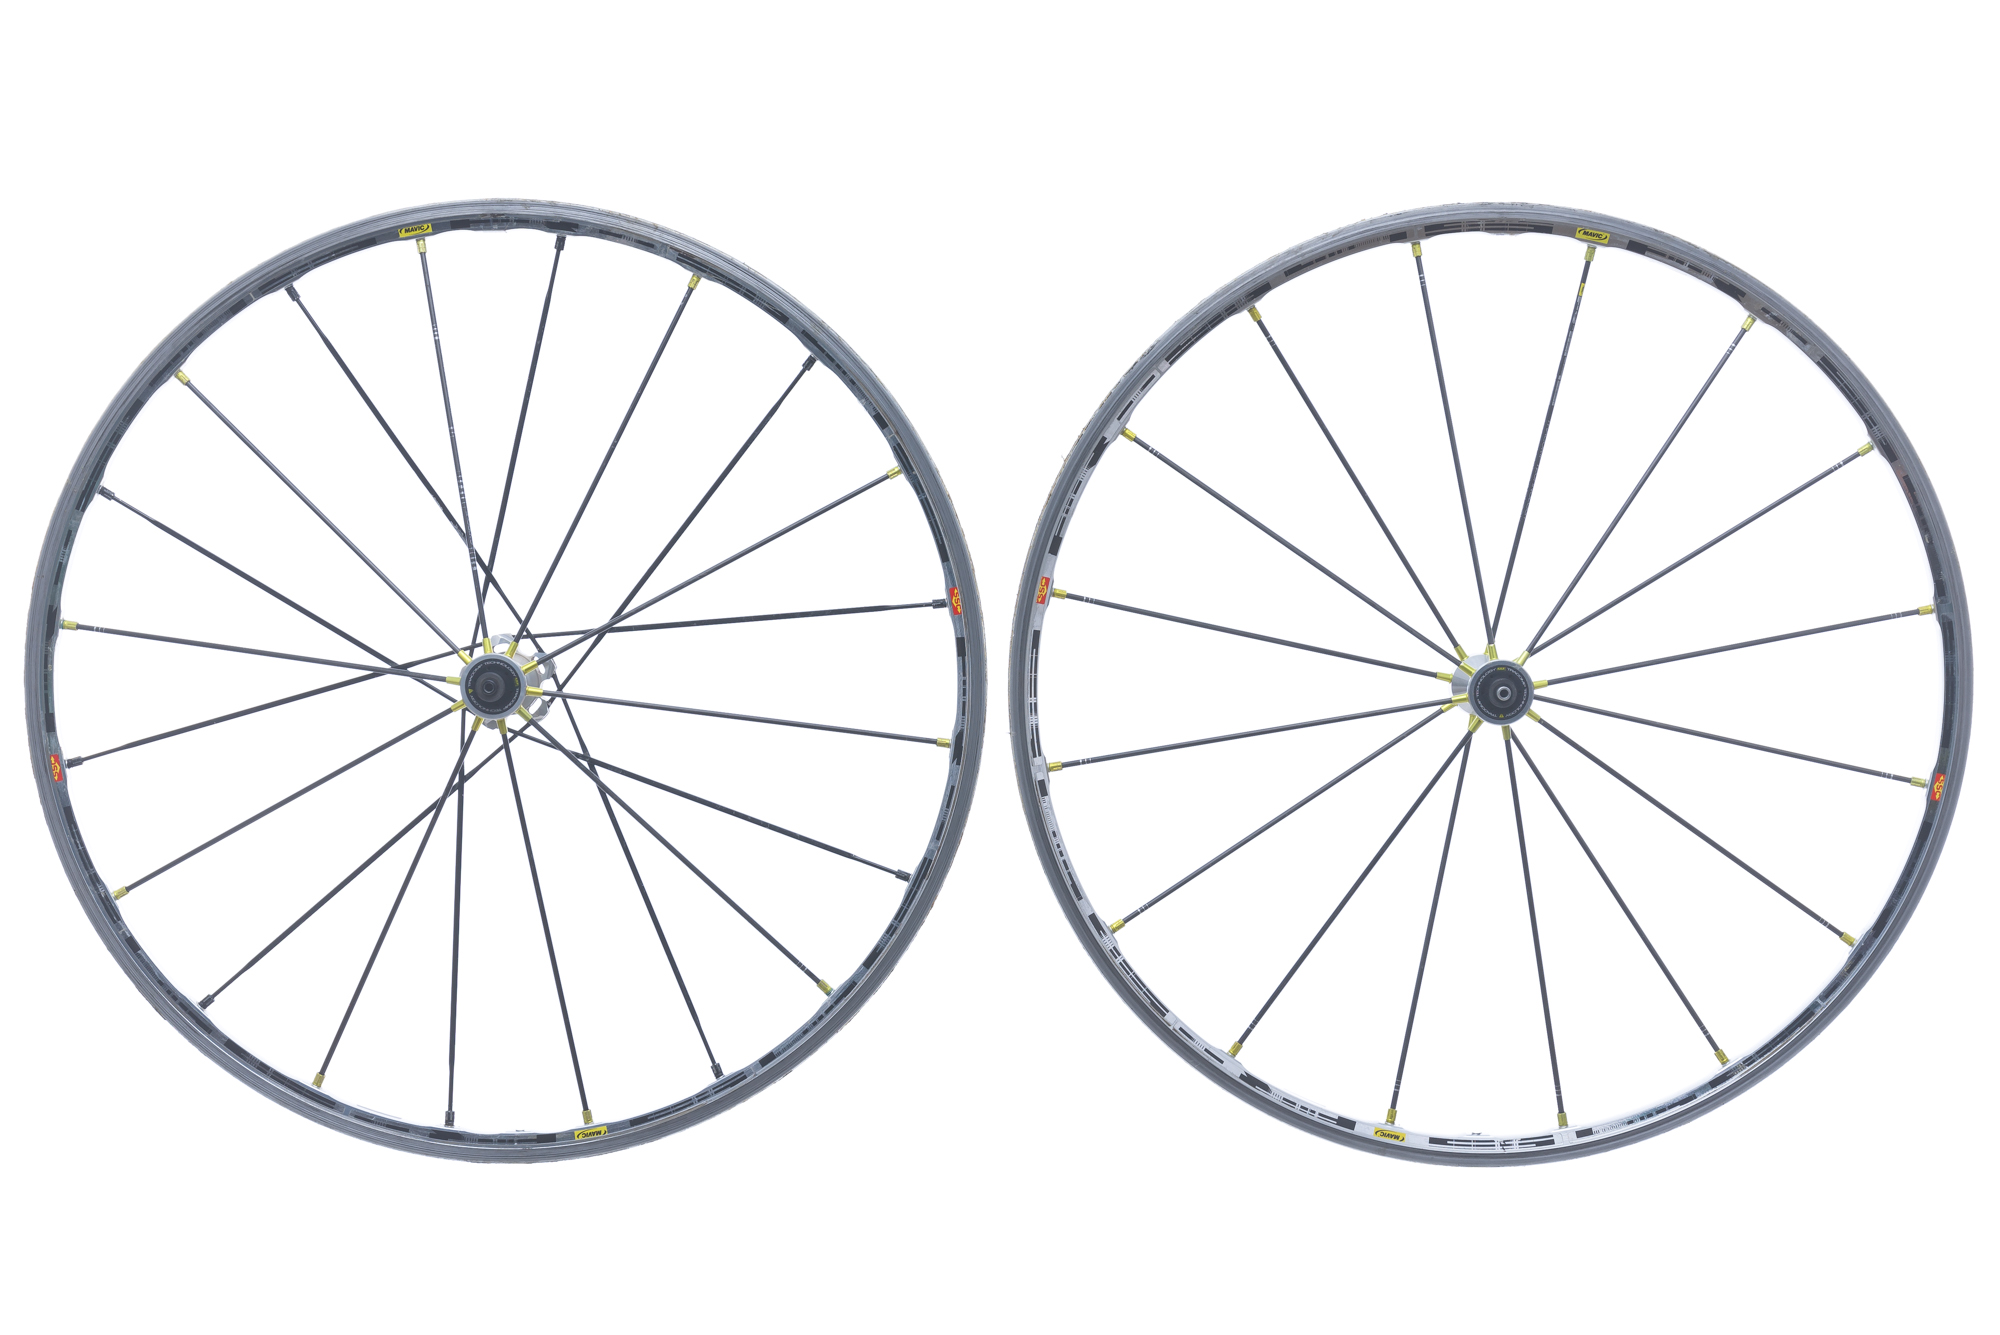 Dating mavic rims history